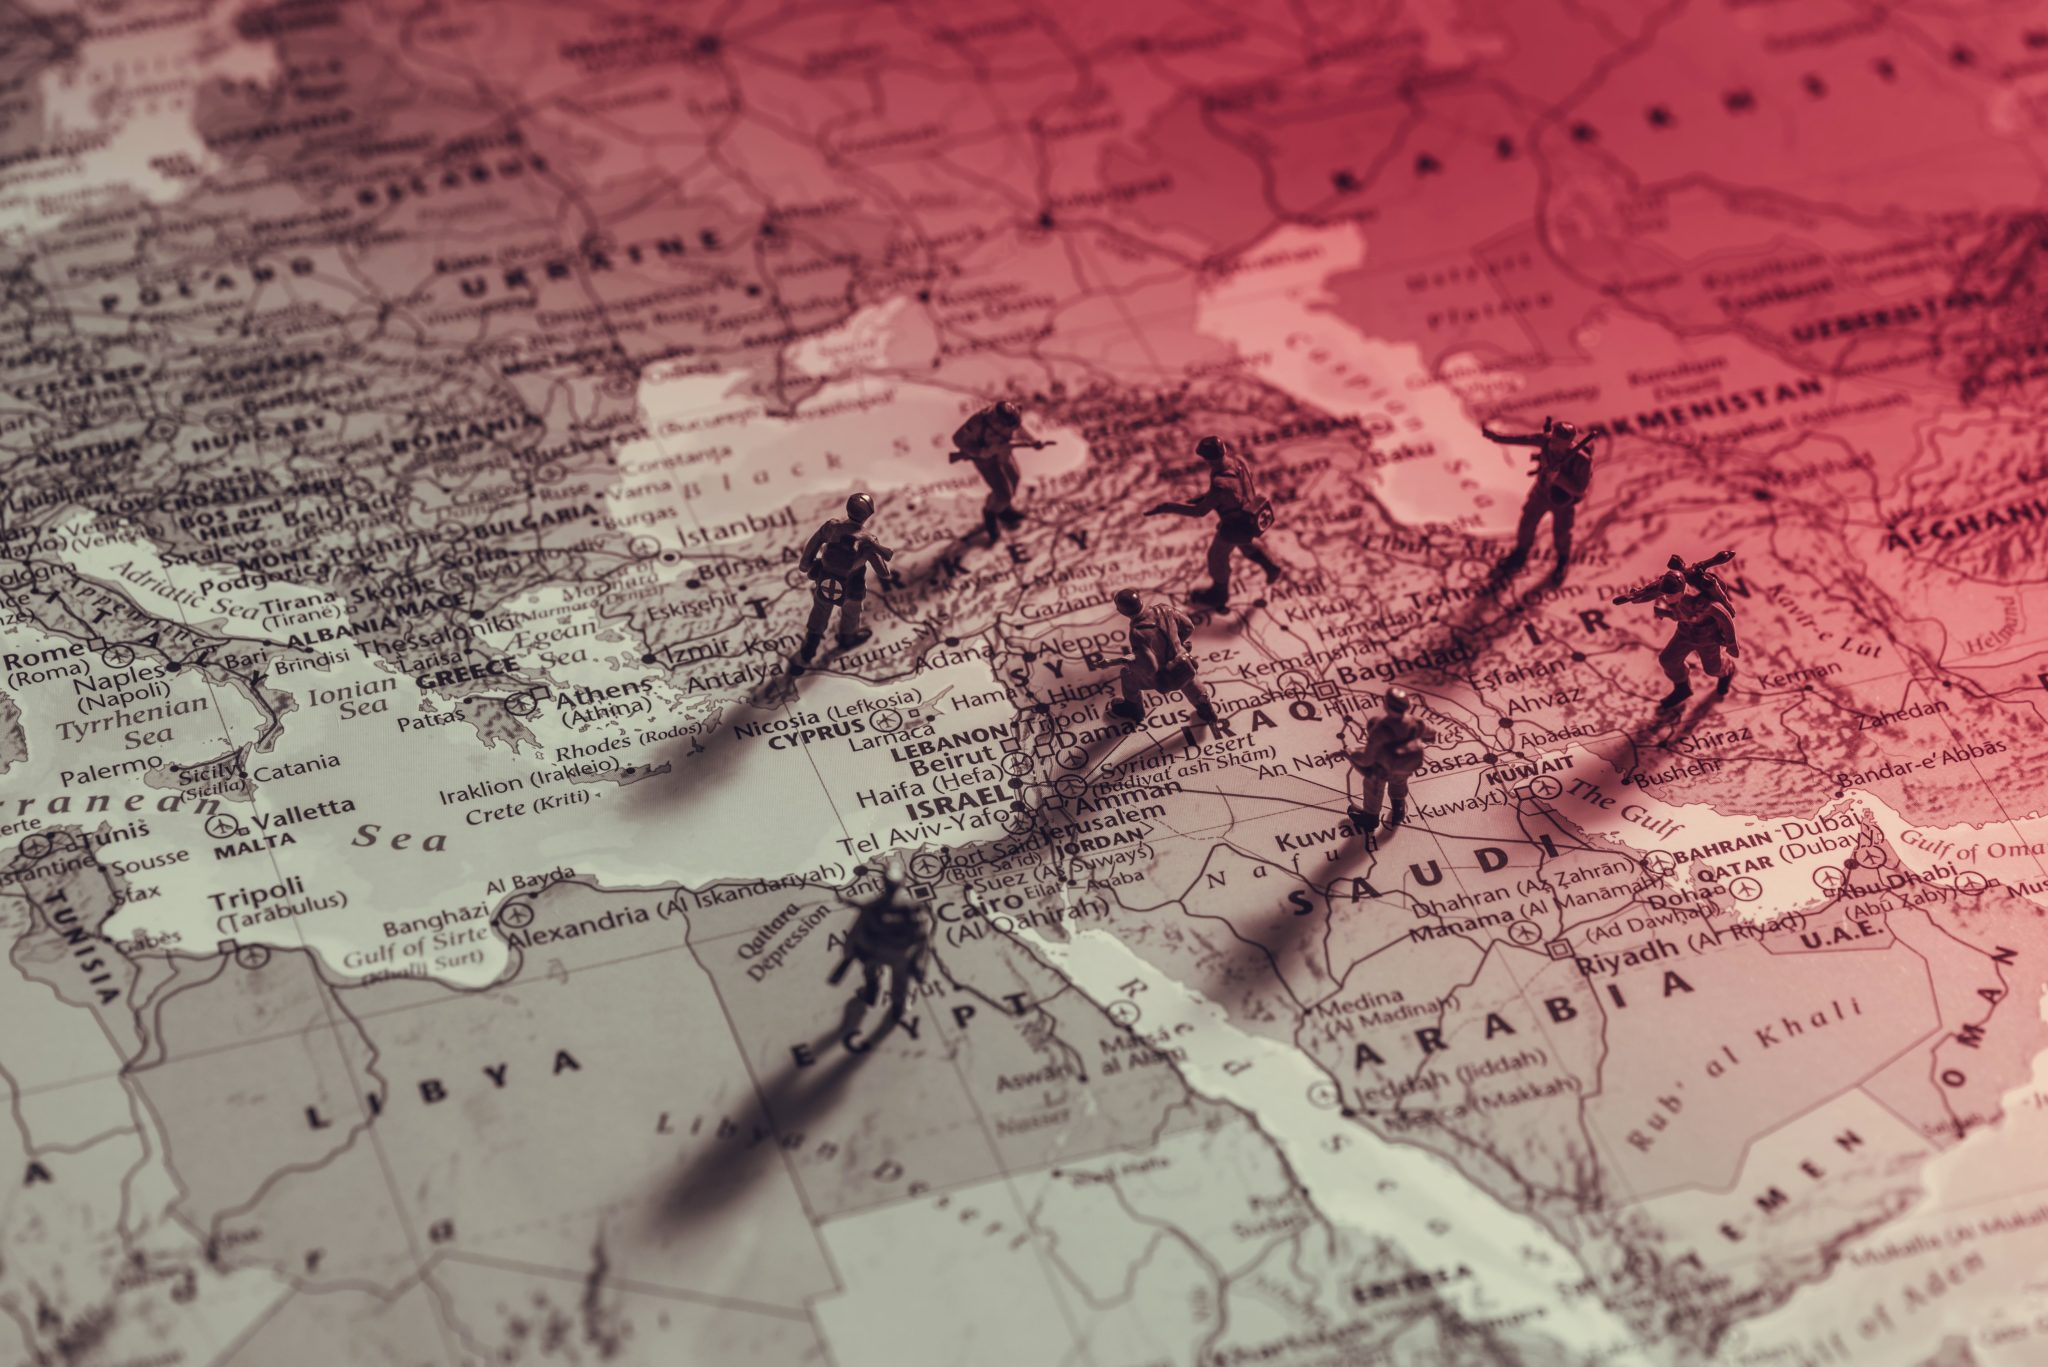 Improving Reverse Logistics Redeployment in the Middle East